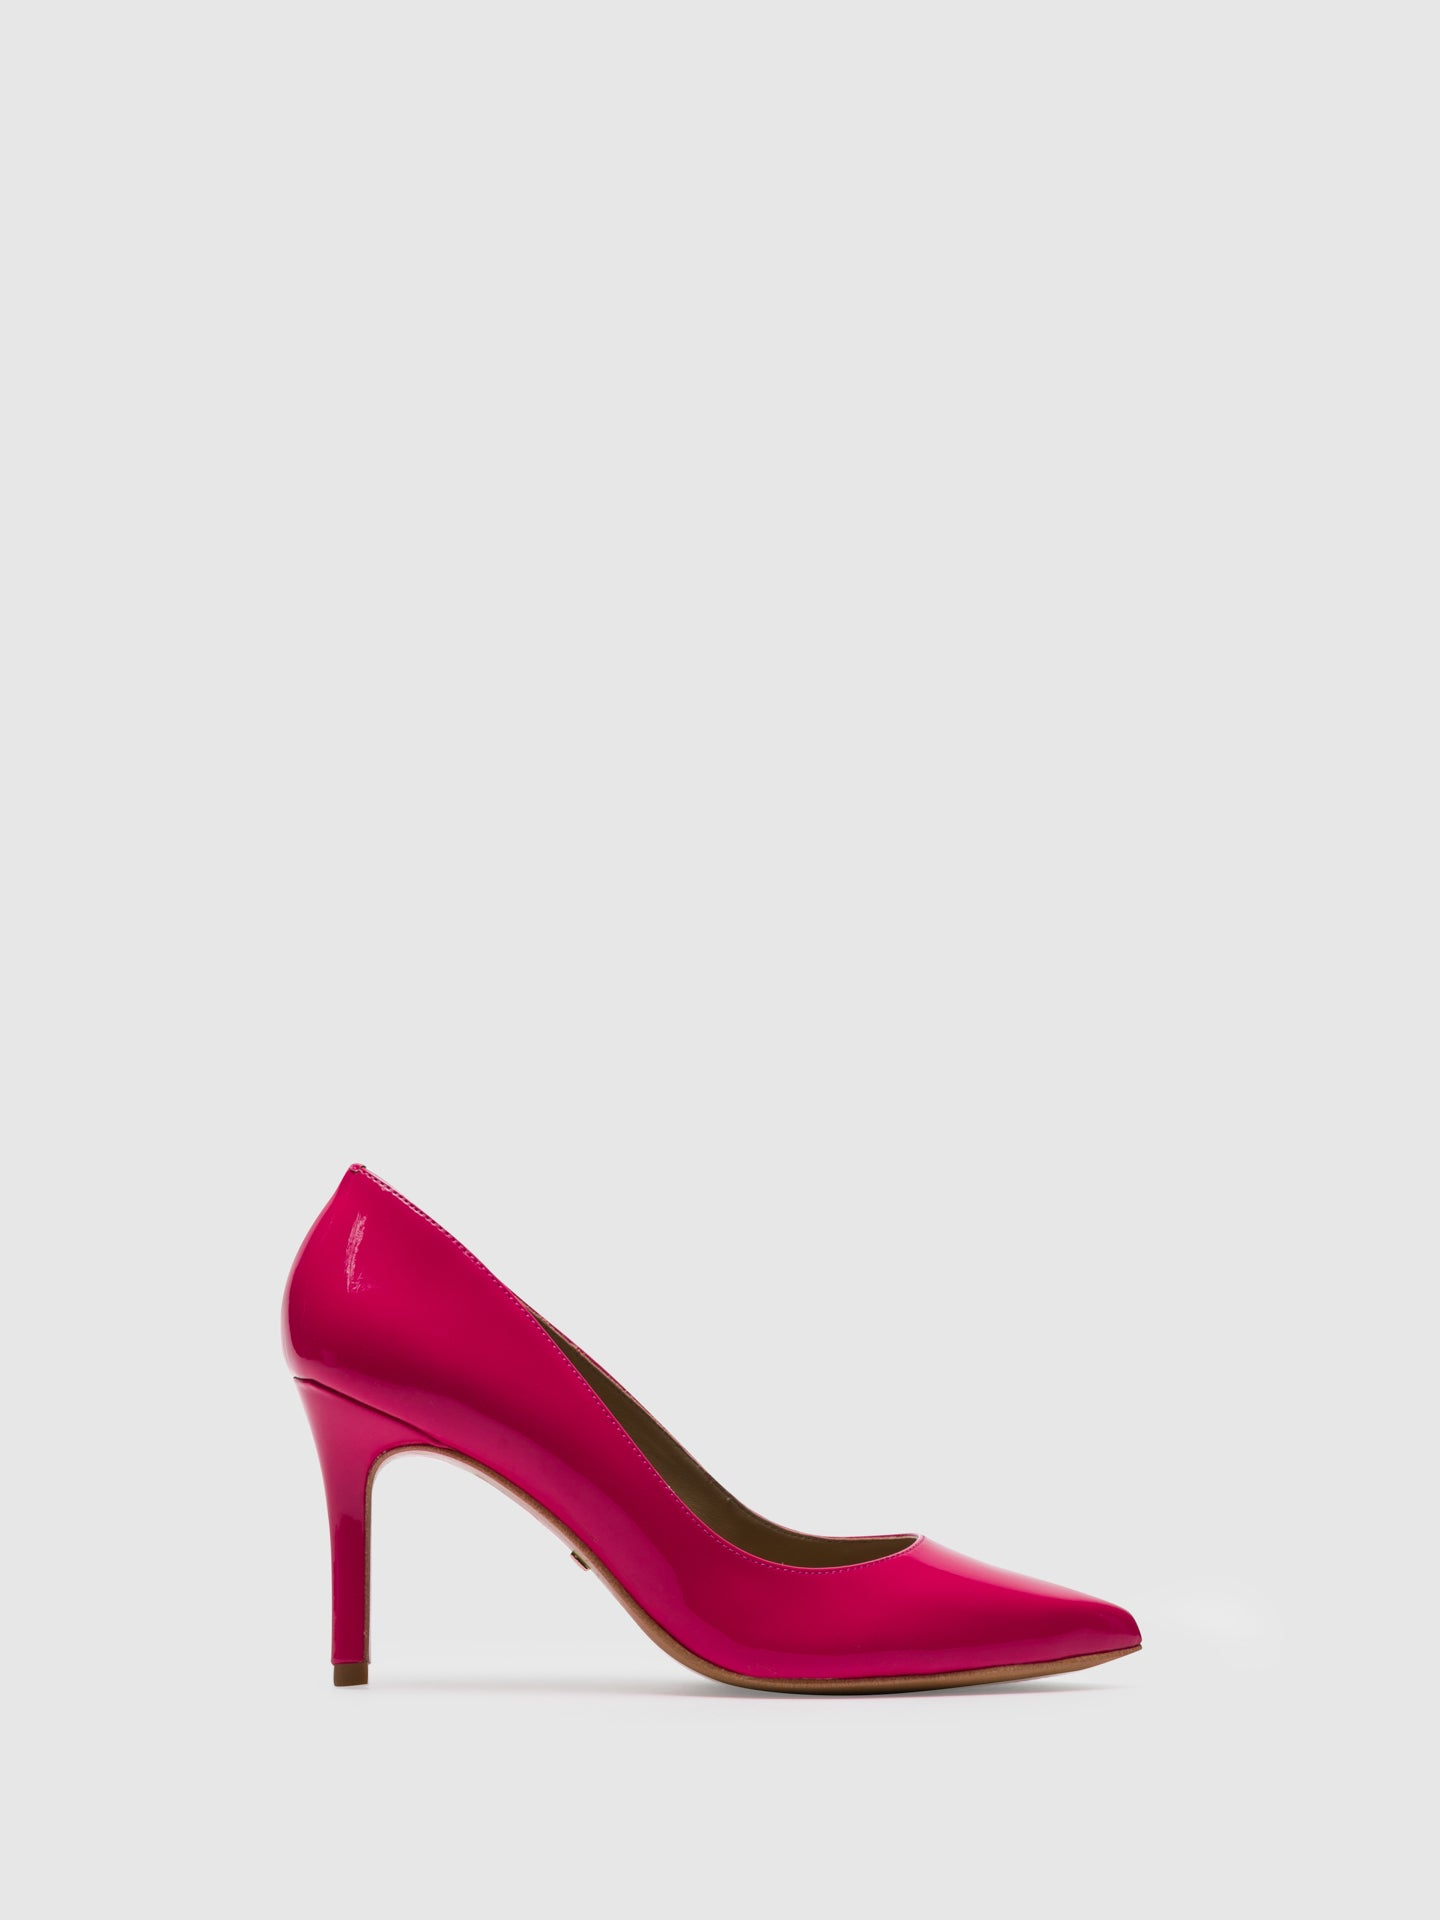 PARODI PASSION HotPink Pointed Toe Shoes